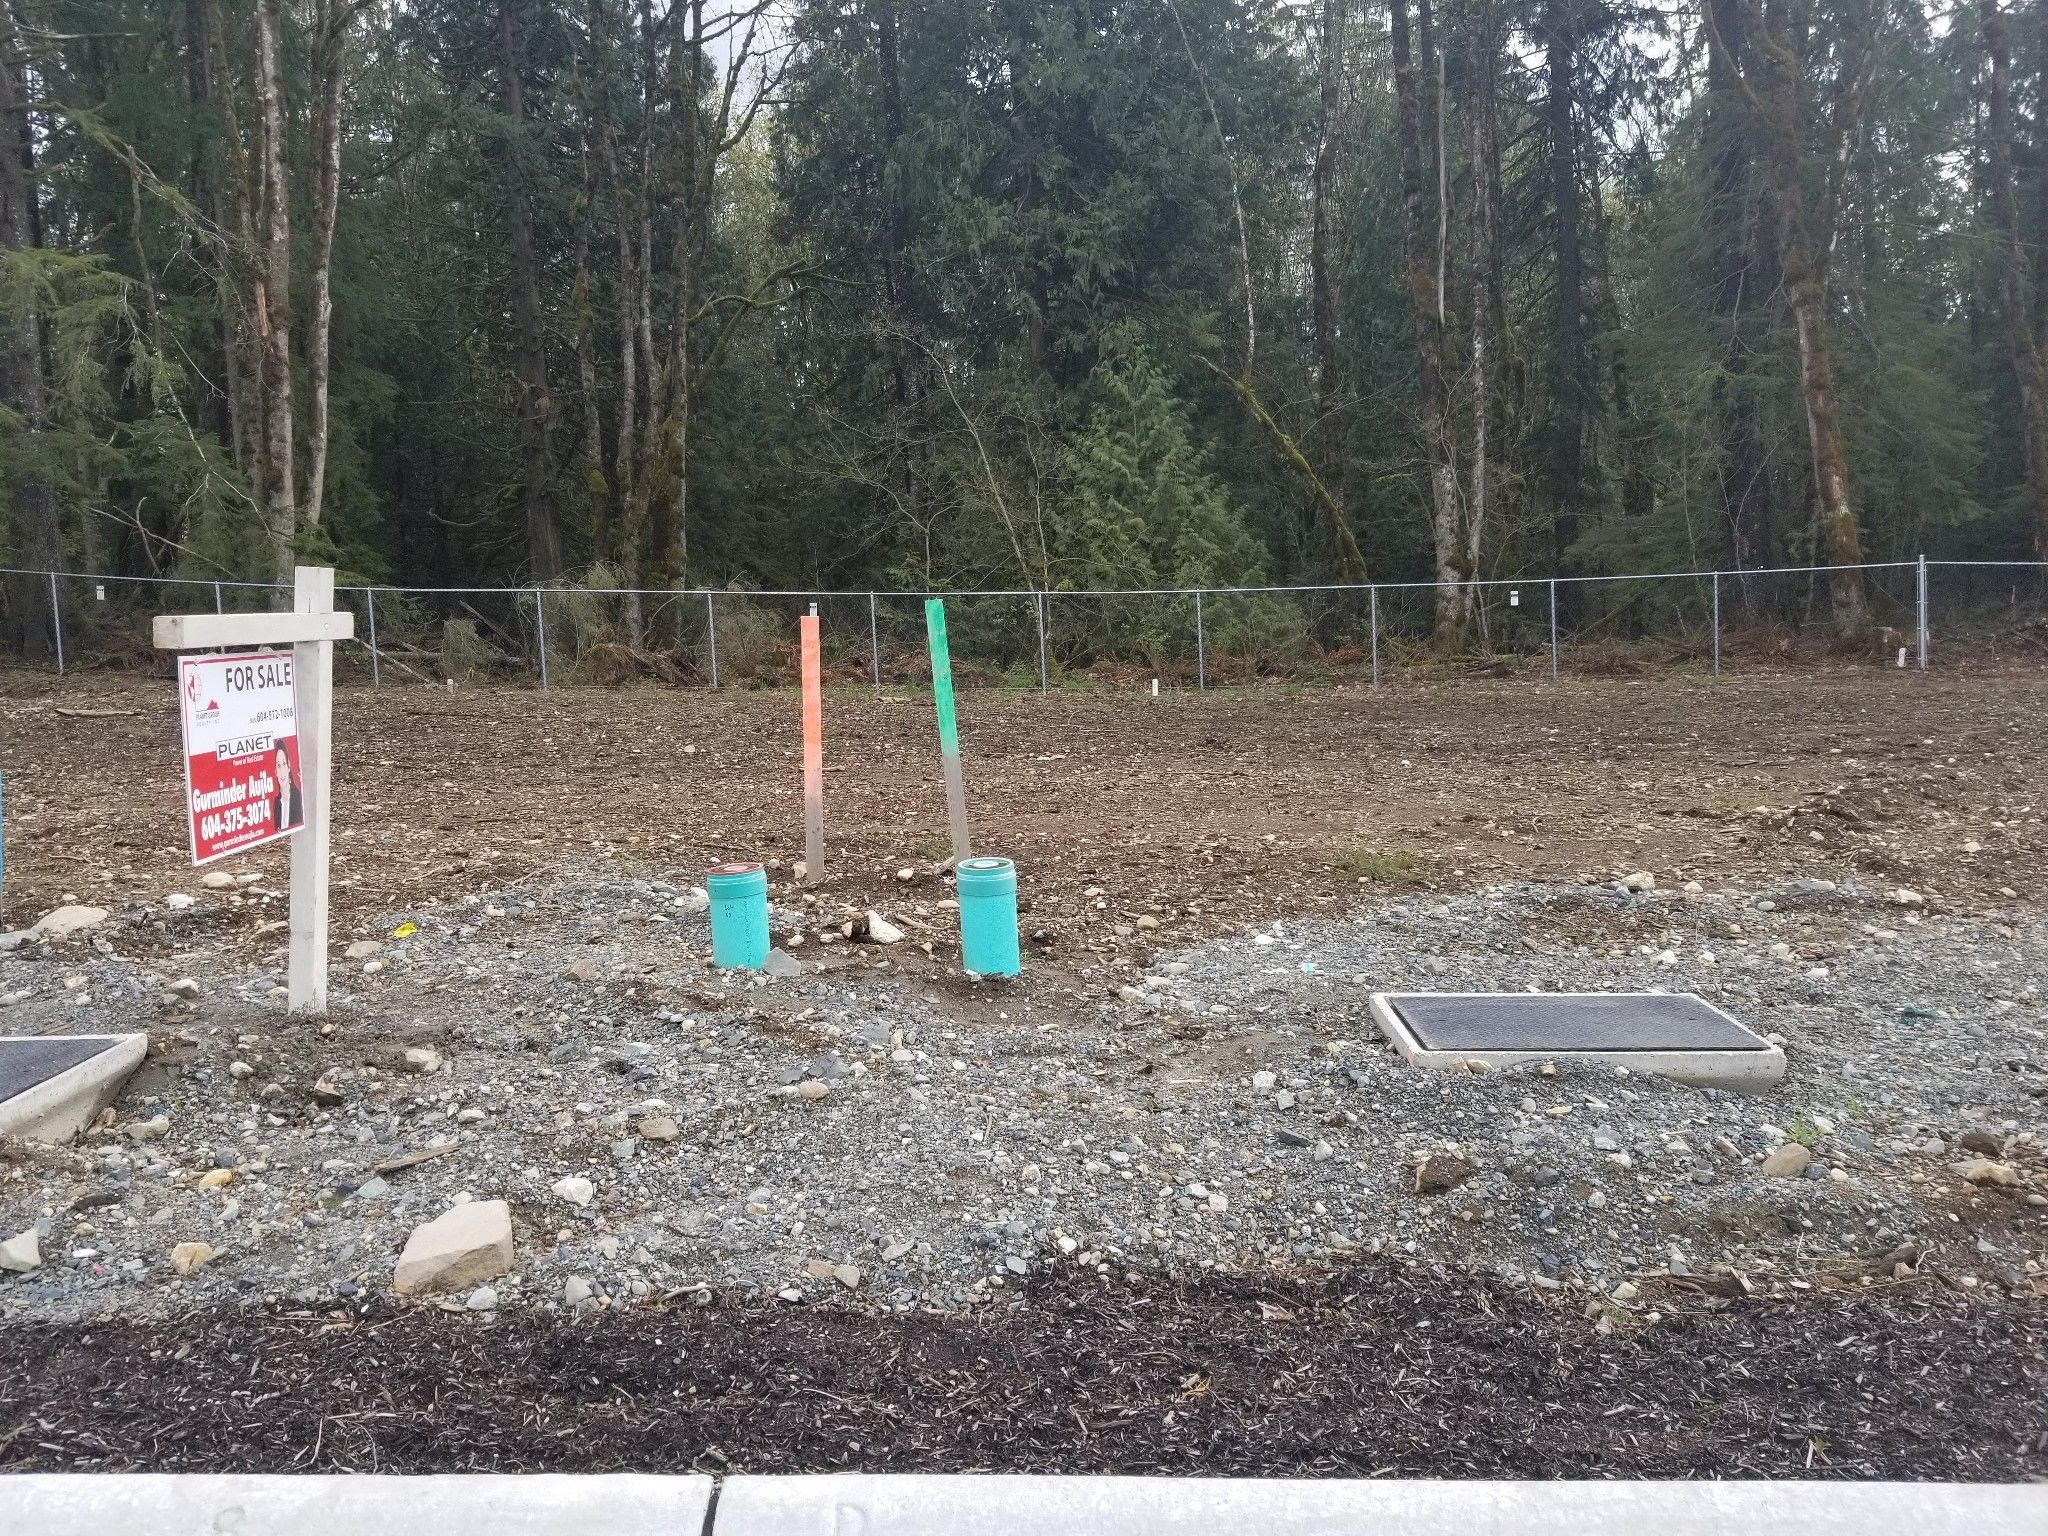 Main Photo: Lot 58 4676/ 4737/ 4633 Sumas Mountain Road in Abbotsford: Abbotsford East Land for sale